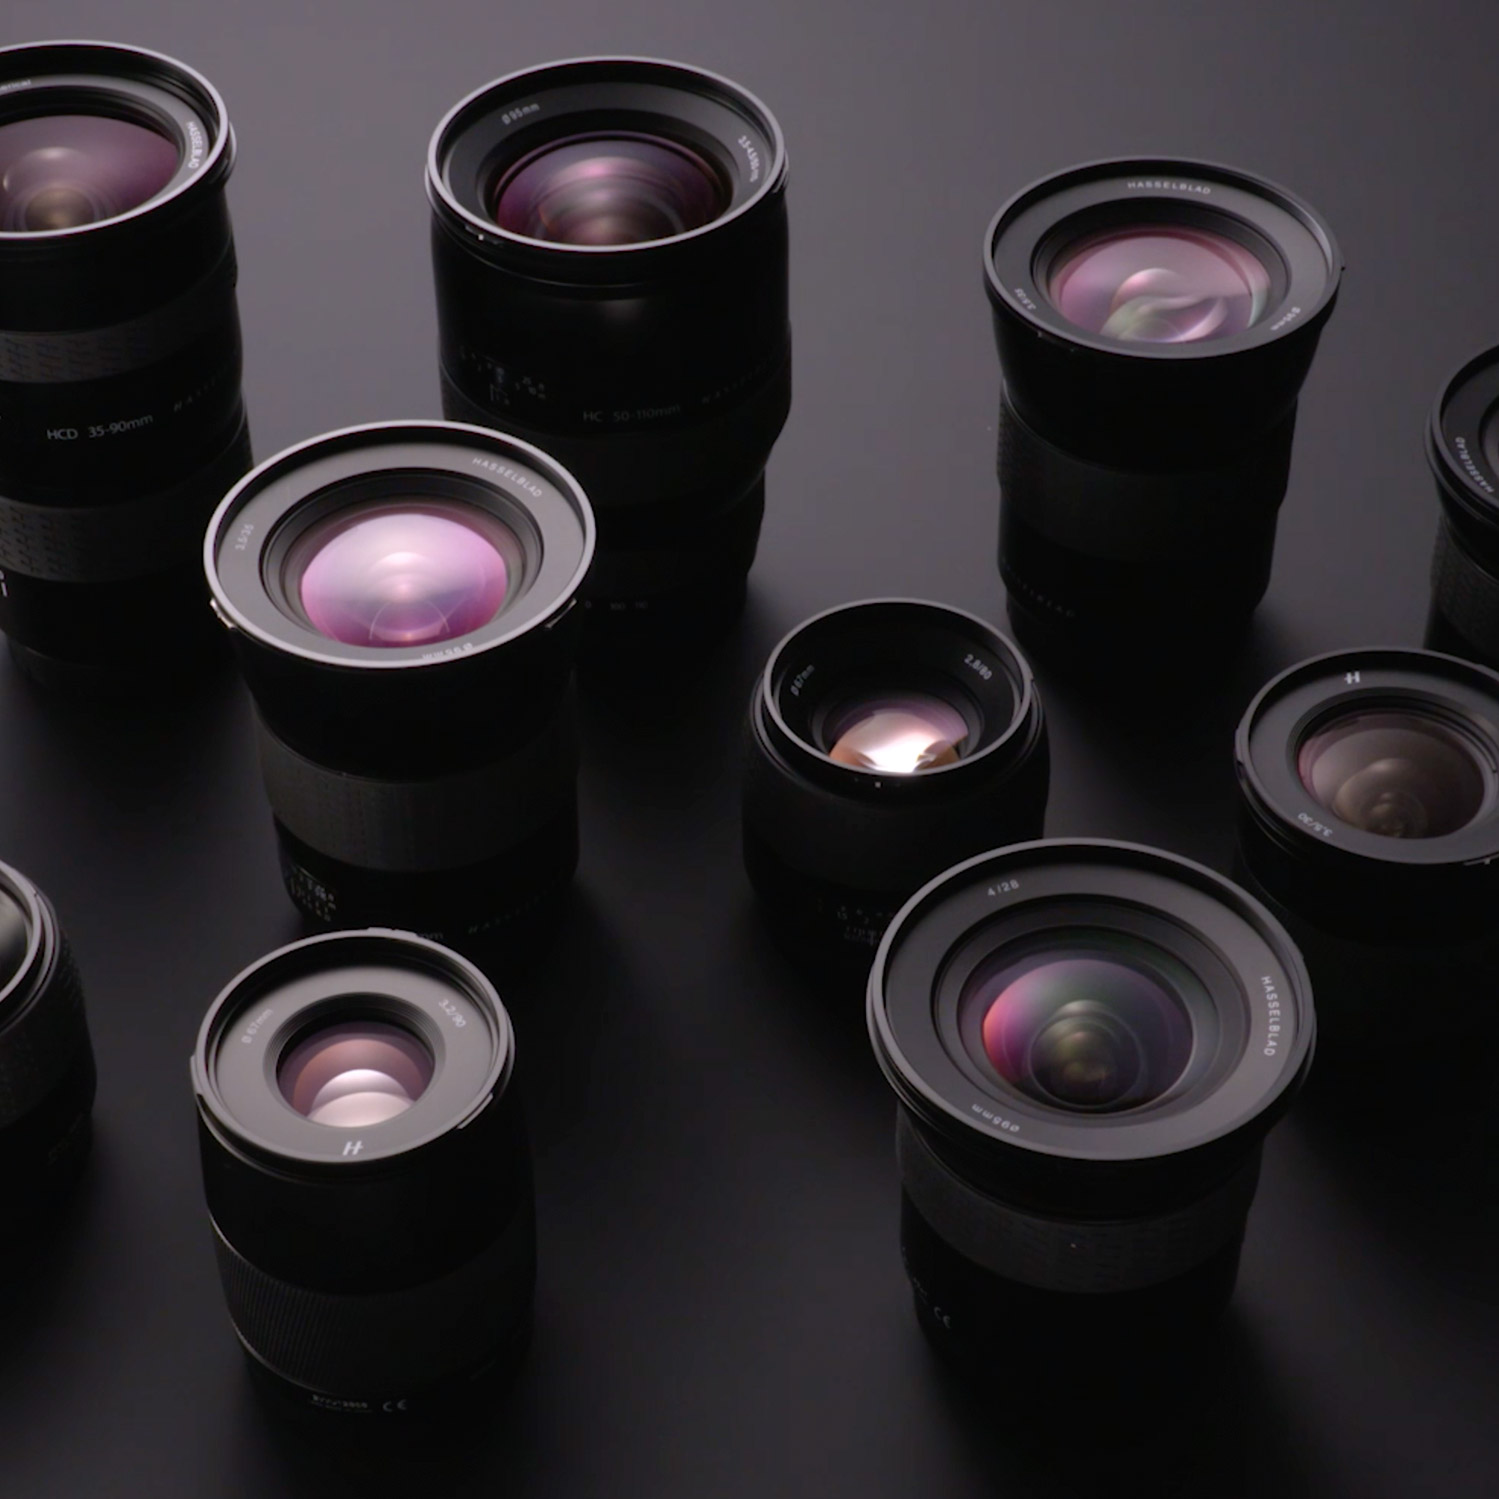 07. Camera lenses and focal length